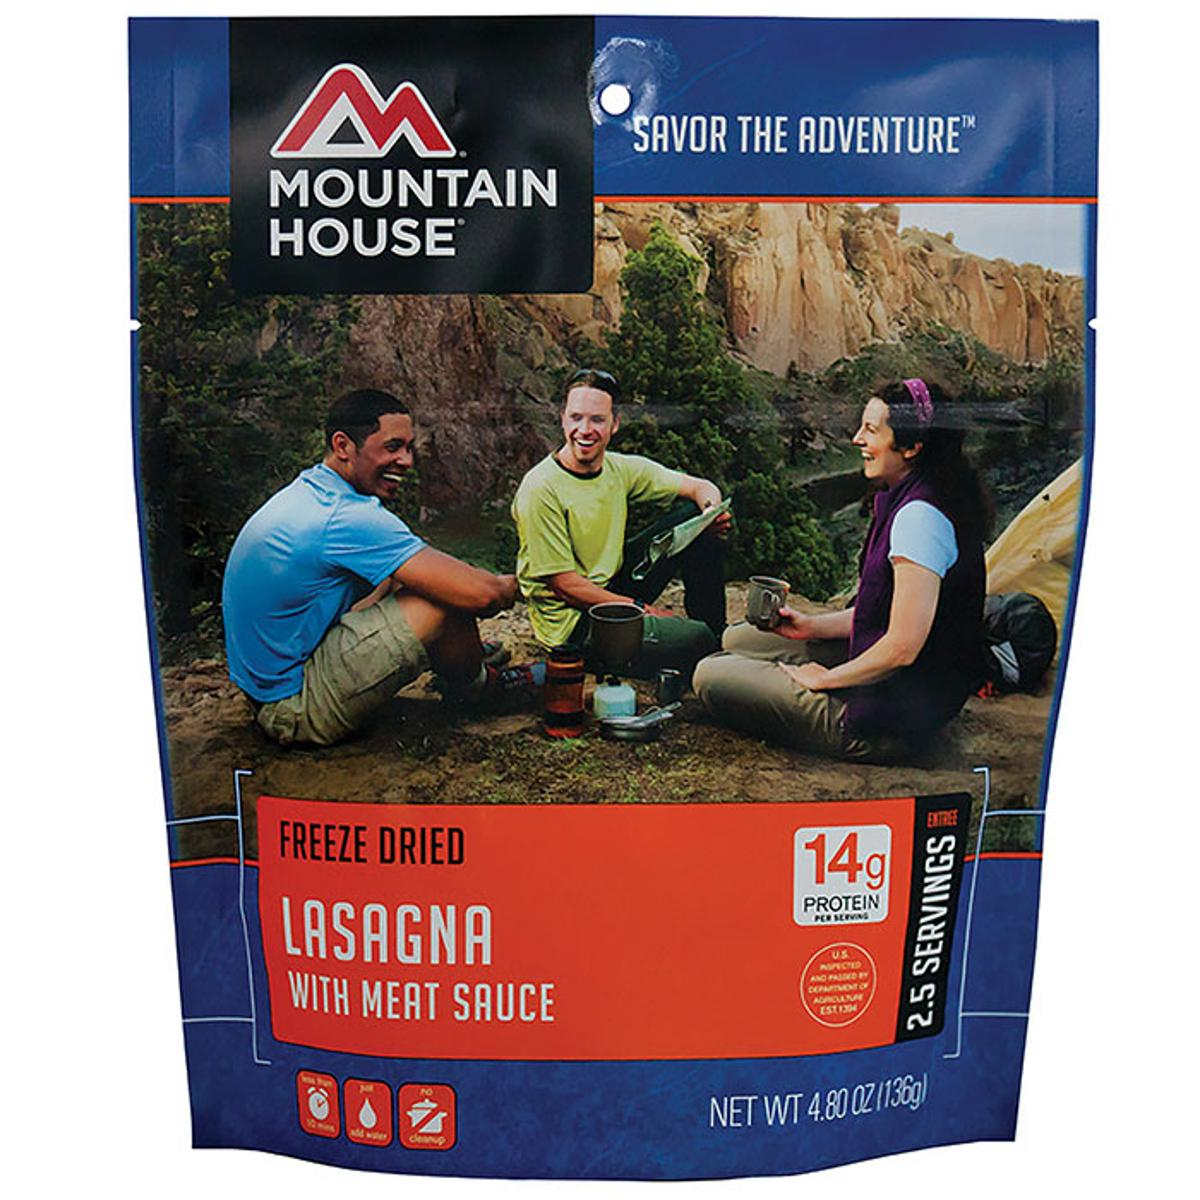 Mountain House Pouch 2-10oz Serv Lasagna, 53127 by Mountain House